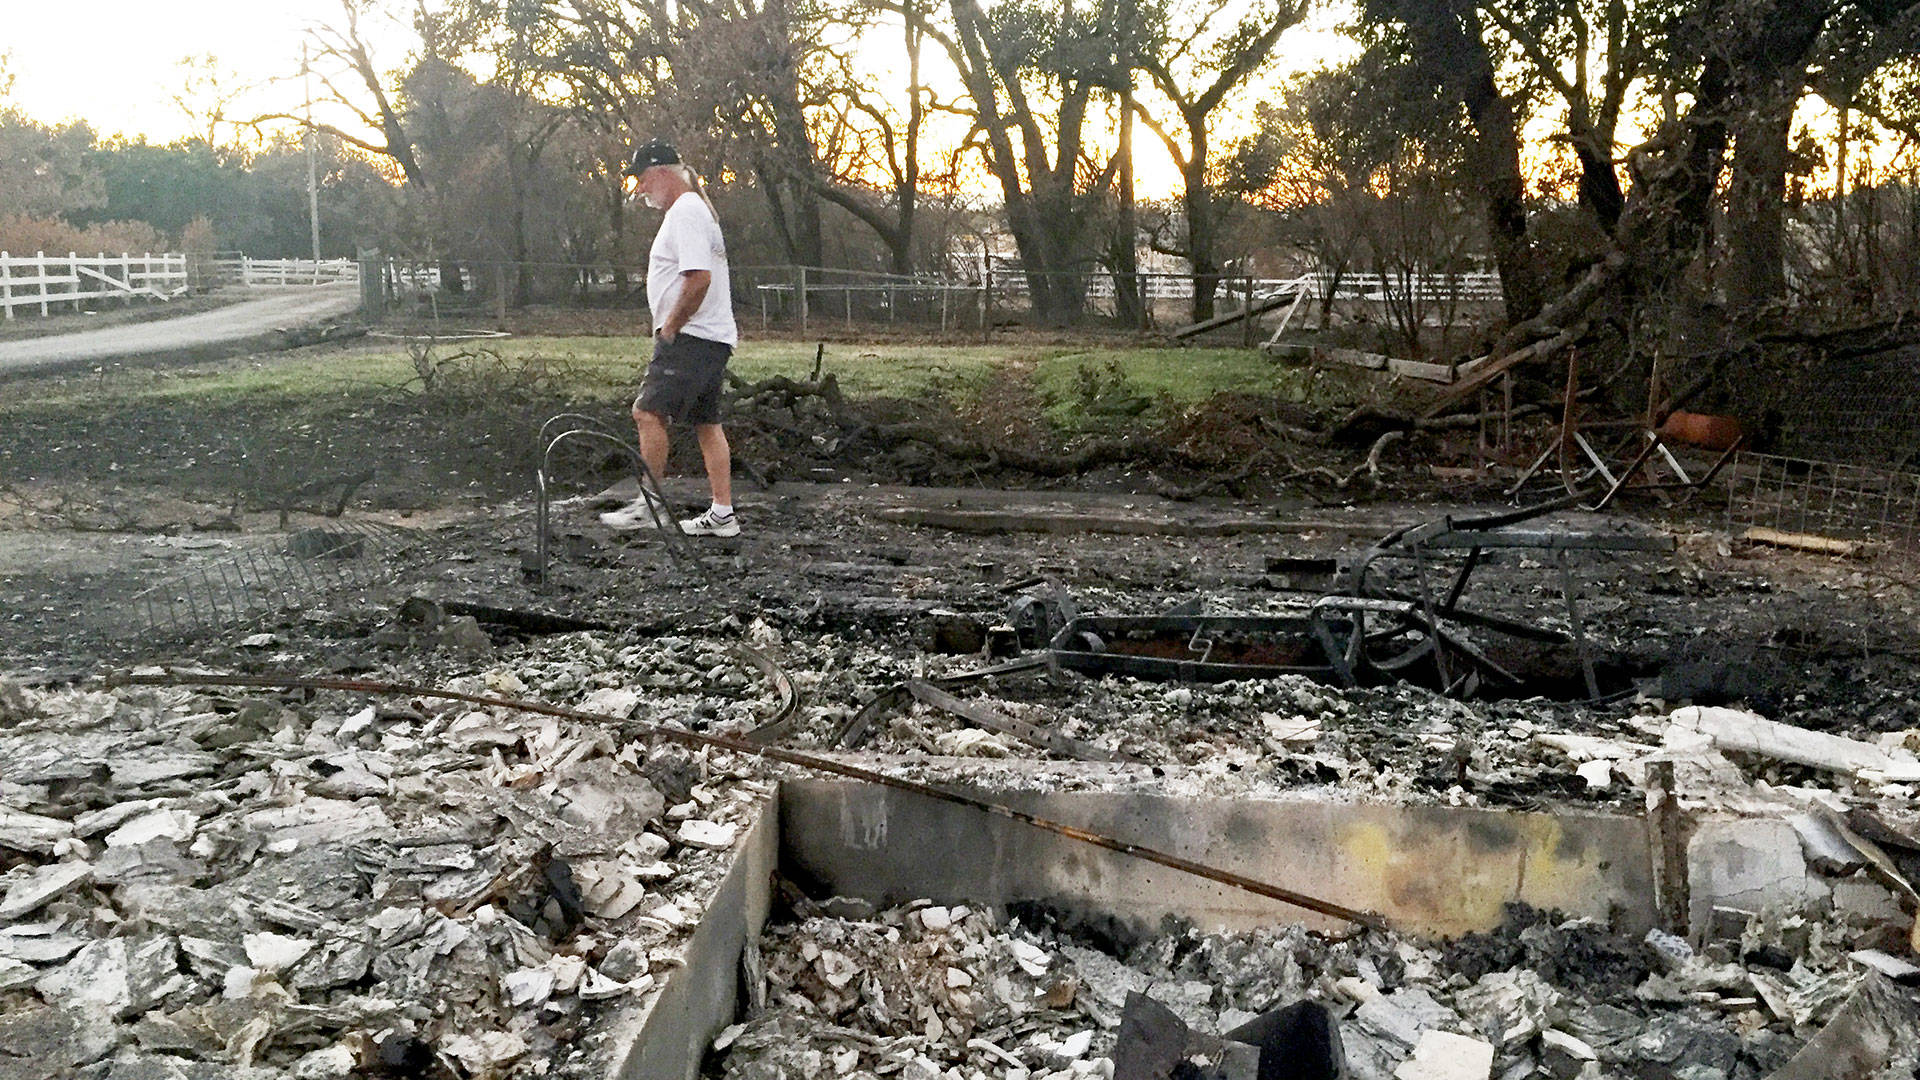 The author's dad walks among the ruins at his childhood home in Larkfield. Gabe Meline/KQED